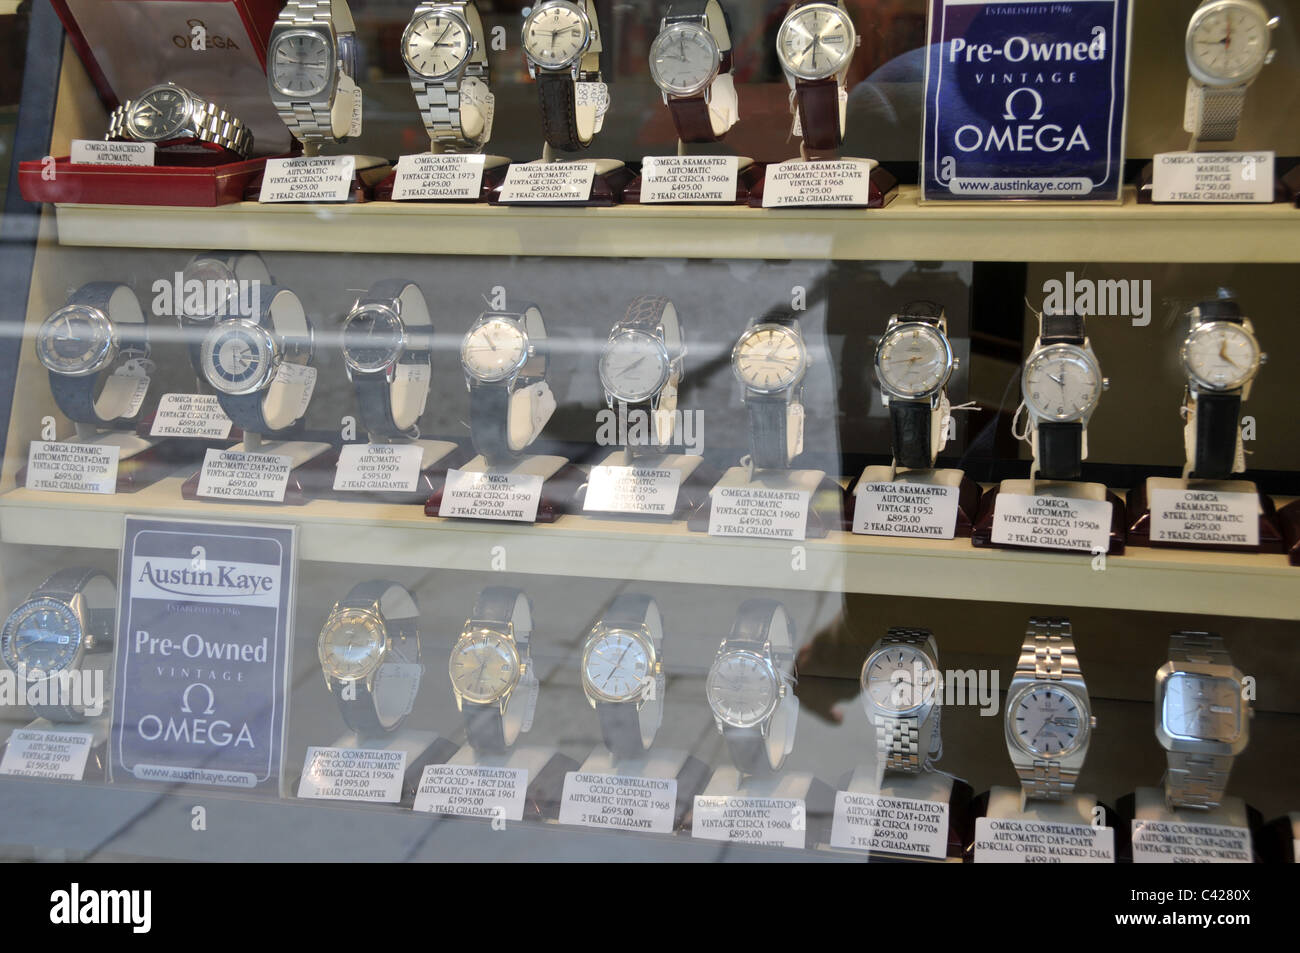 249e06010d1 Watches Shop Window Stock Photos   Watches Shop Window Stock Images ...